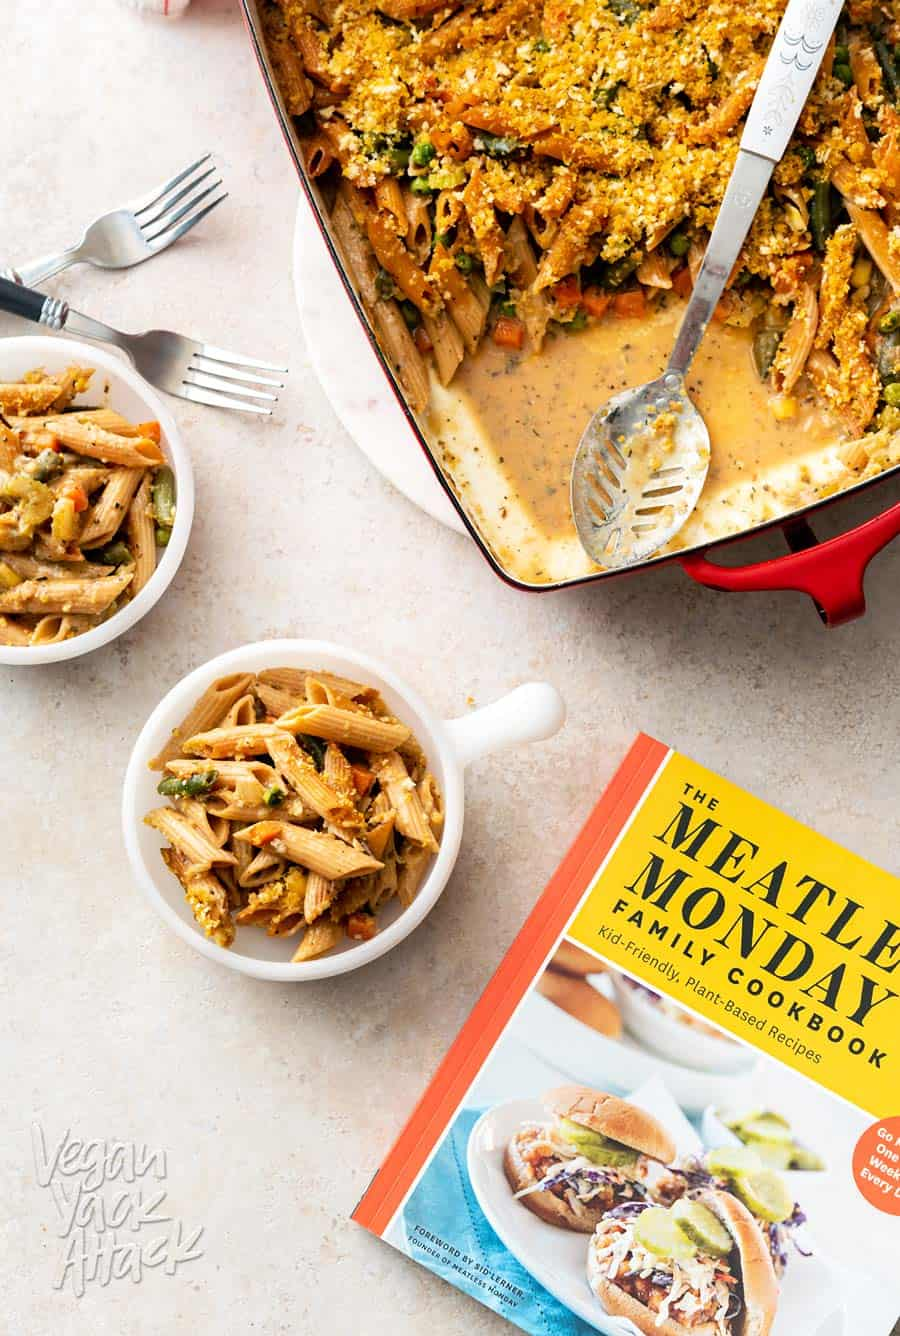 A photo of two bowls filled with vegan noodle casserole, next to a casserole dish and cookbook.